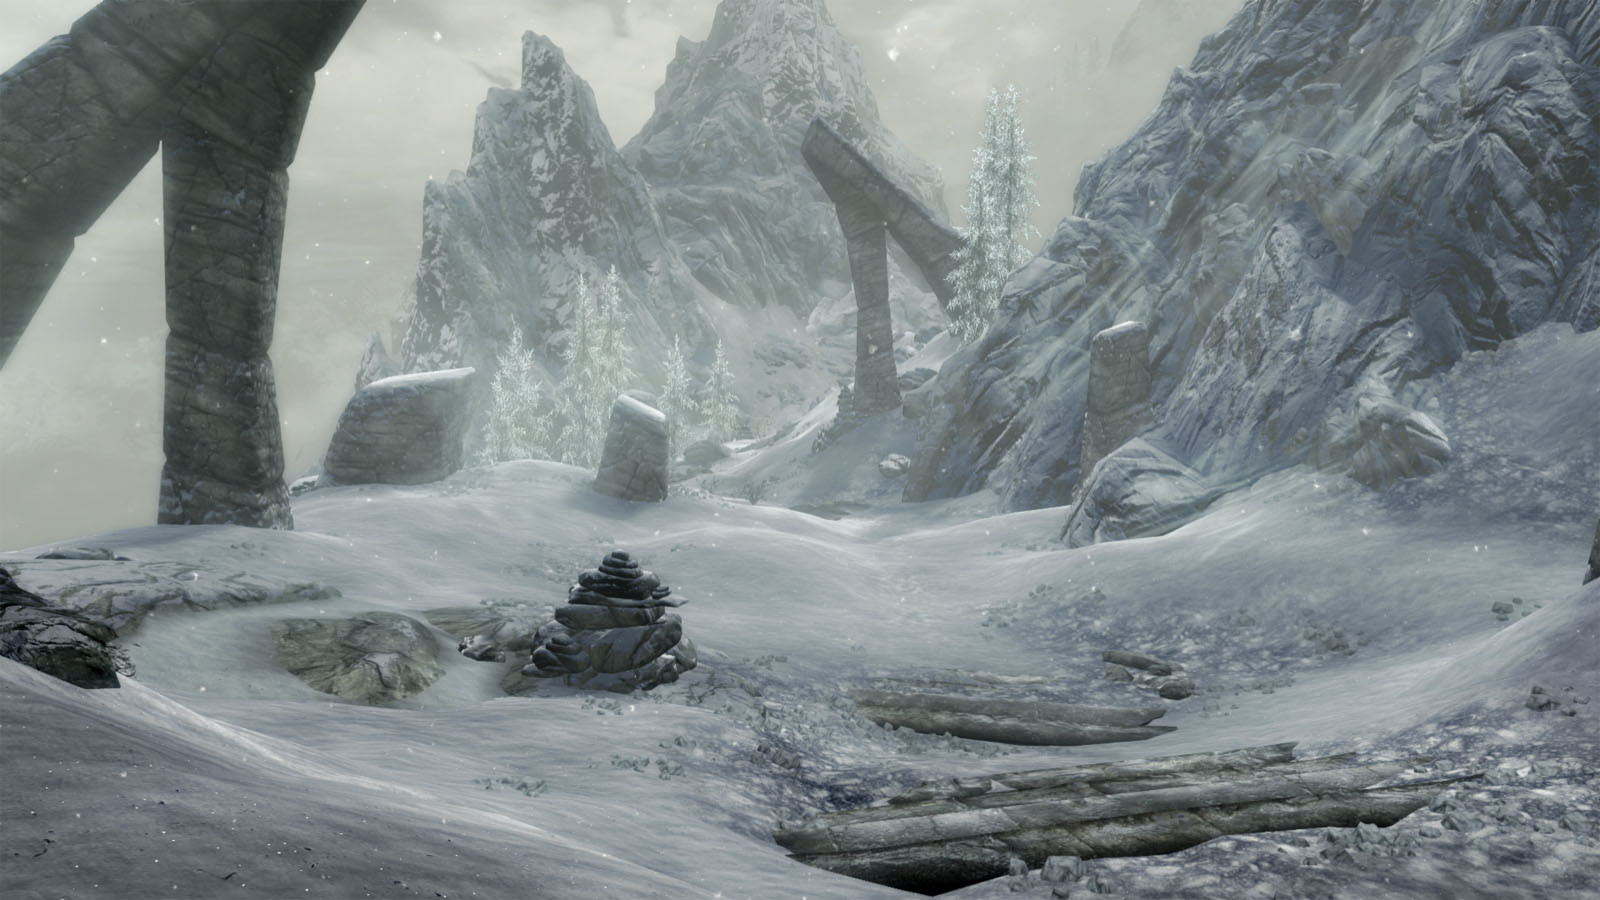 The Elder Scrolls V: Skyrim Special Edition [Steam CD Key] for PC - Buy now